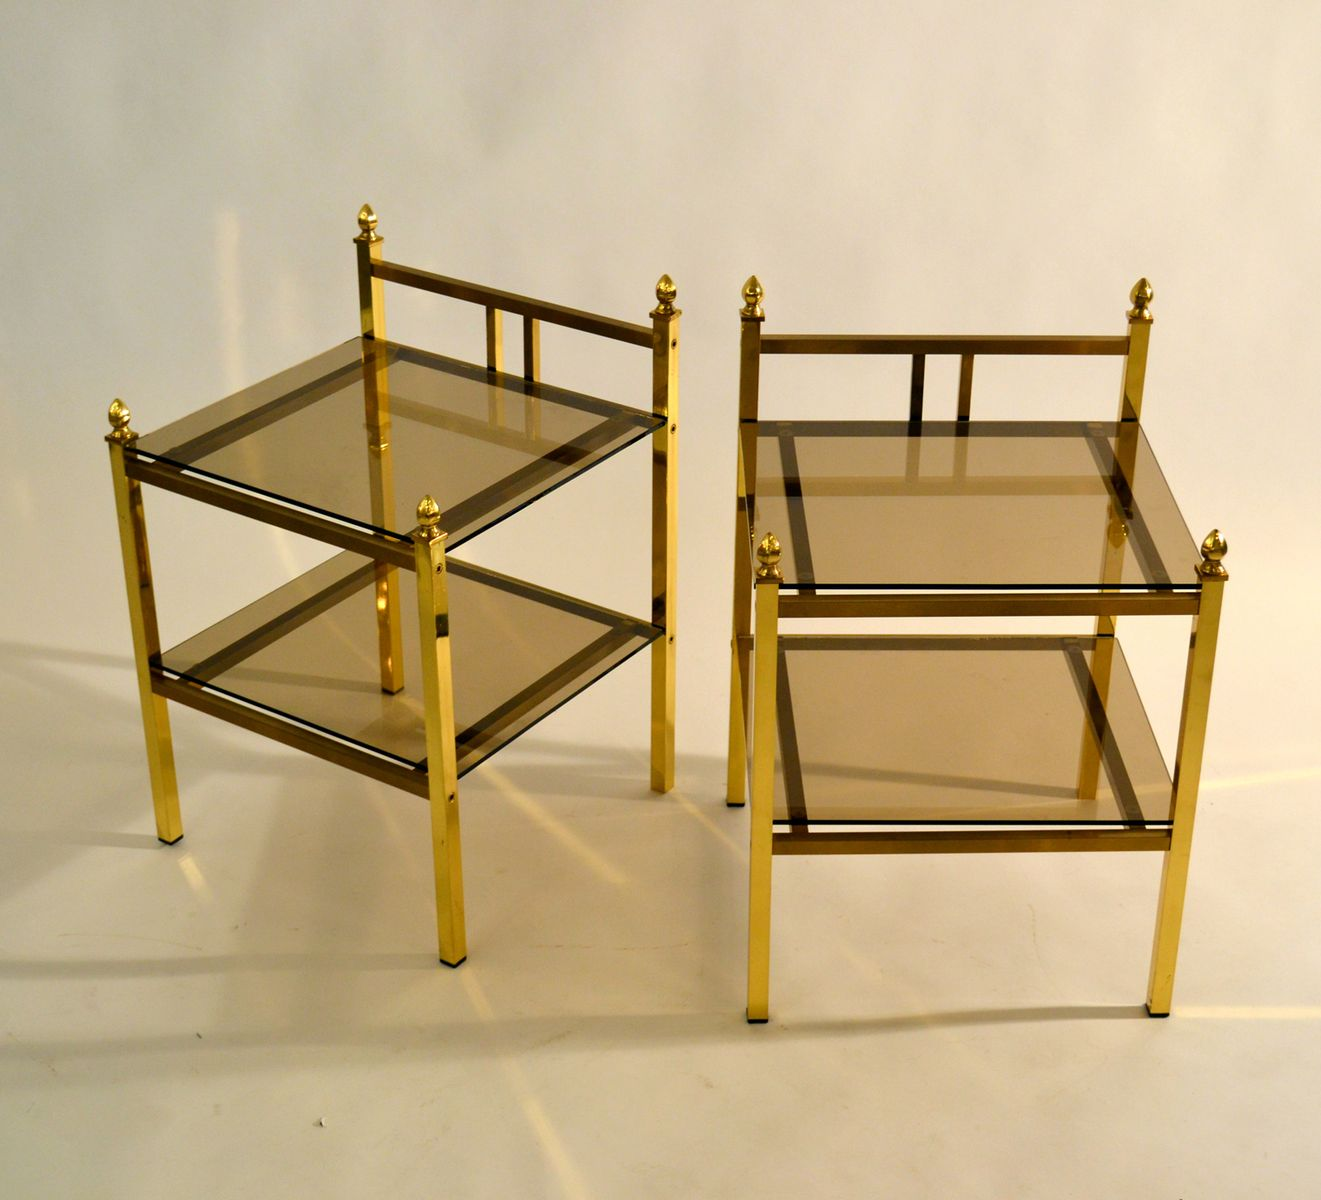 Brass Side Tables with Glass Shelves, 1970s, Set of 2 for sale at Pamono